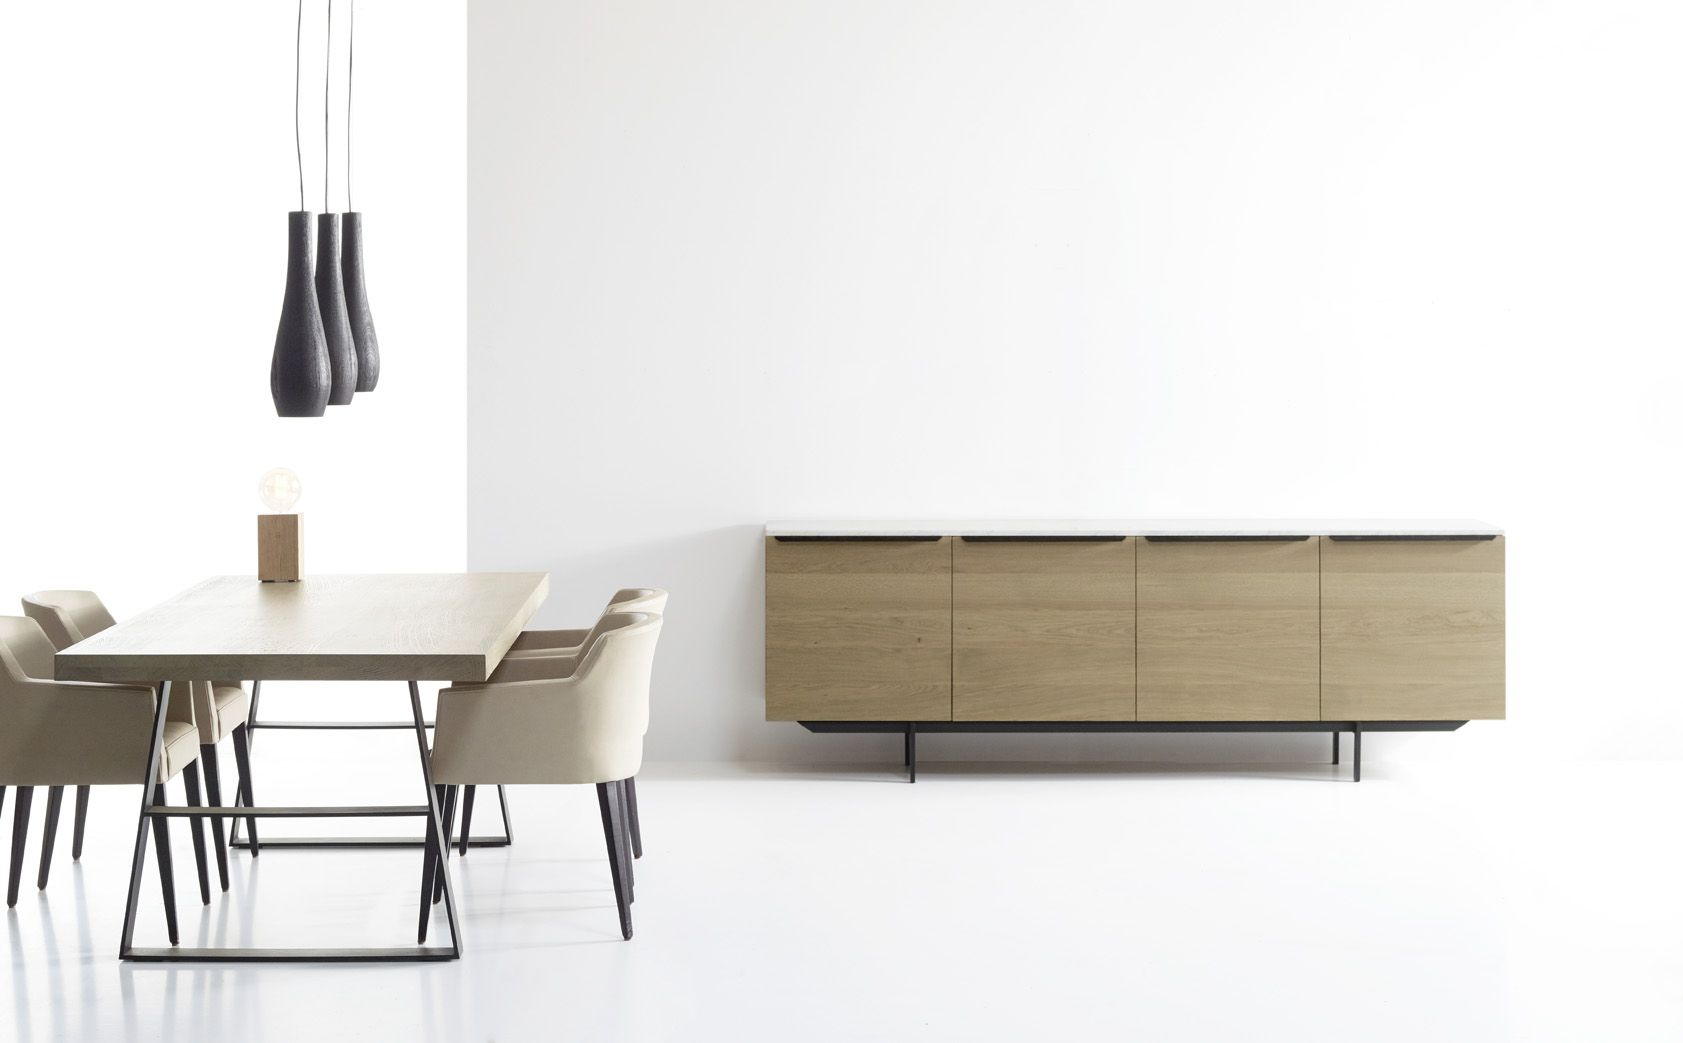 Micheldenolf I Carrara Products Pinterest # Muebles Carre Sant Cugat